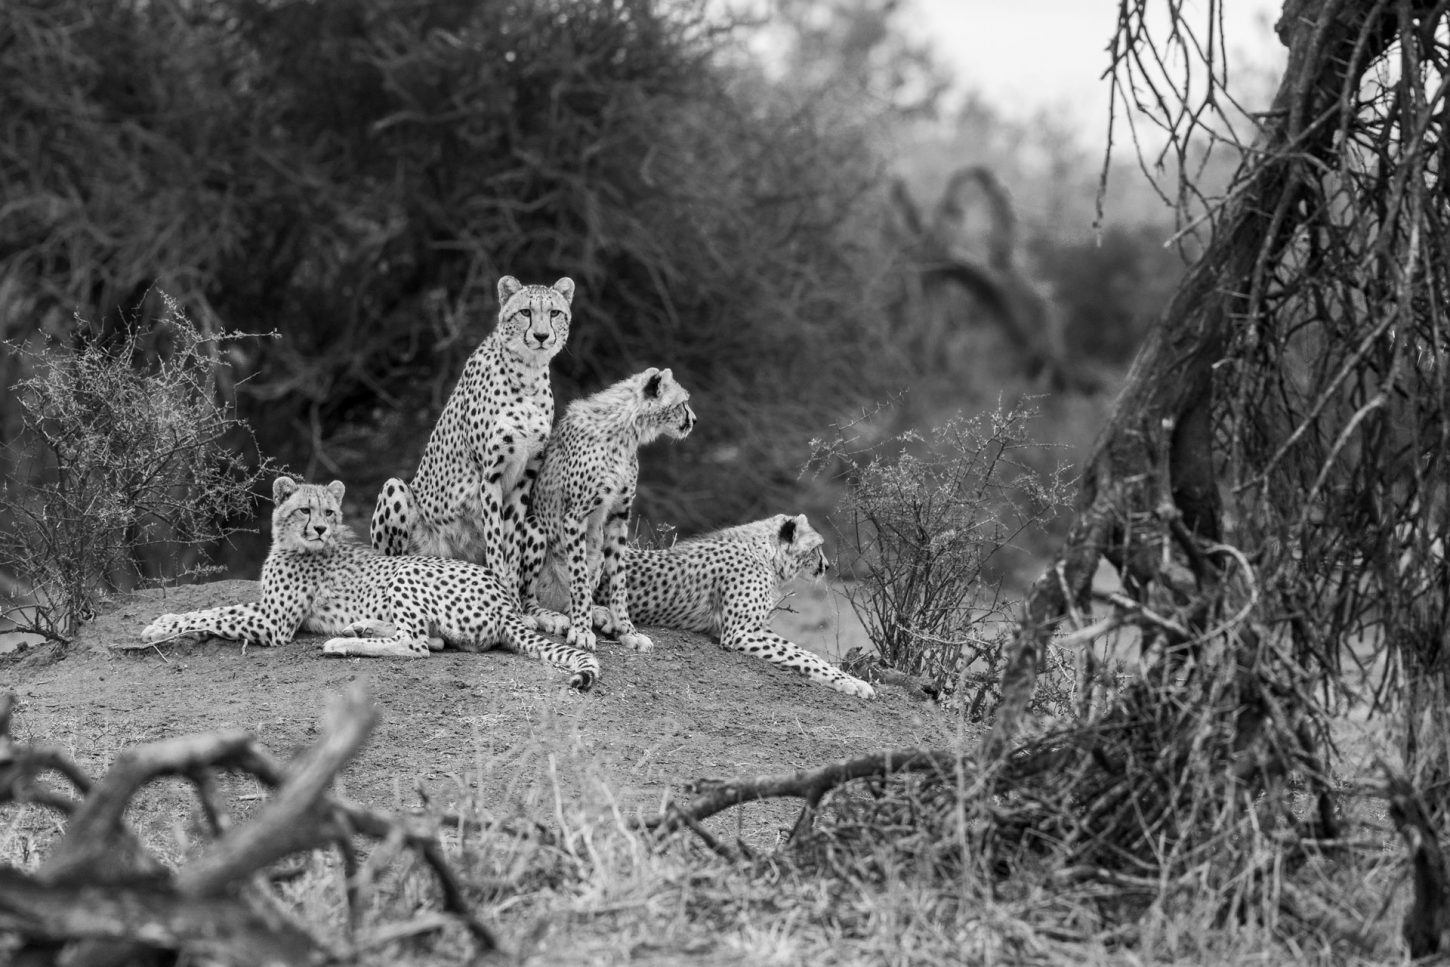 Mother cheetah and cubs sitting on termite mound